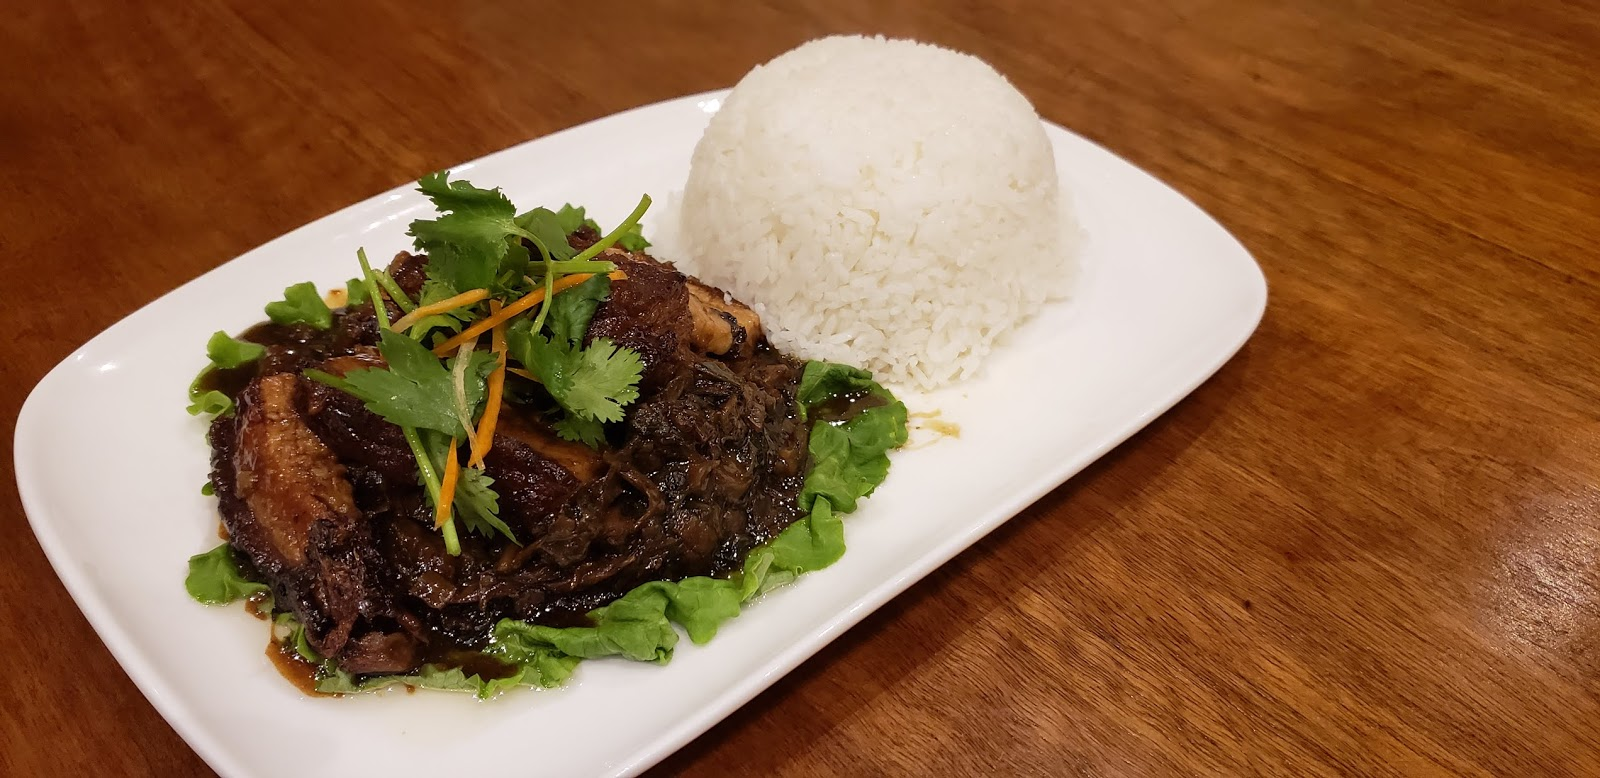 Pork with Dried Vegetable on Rice